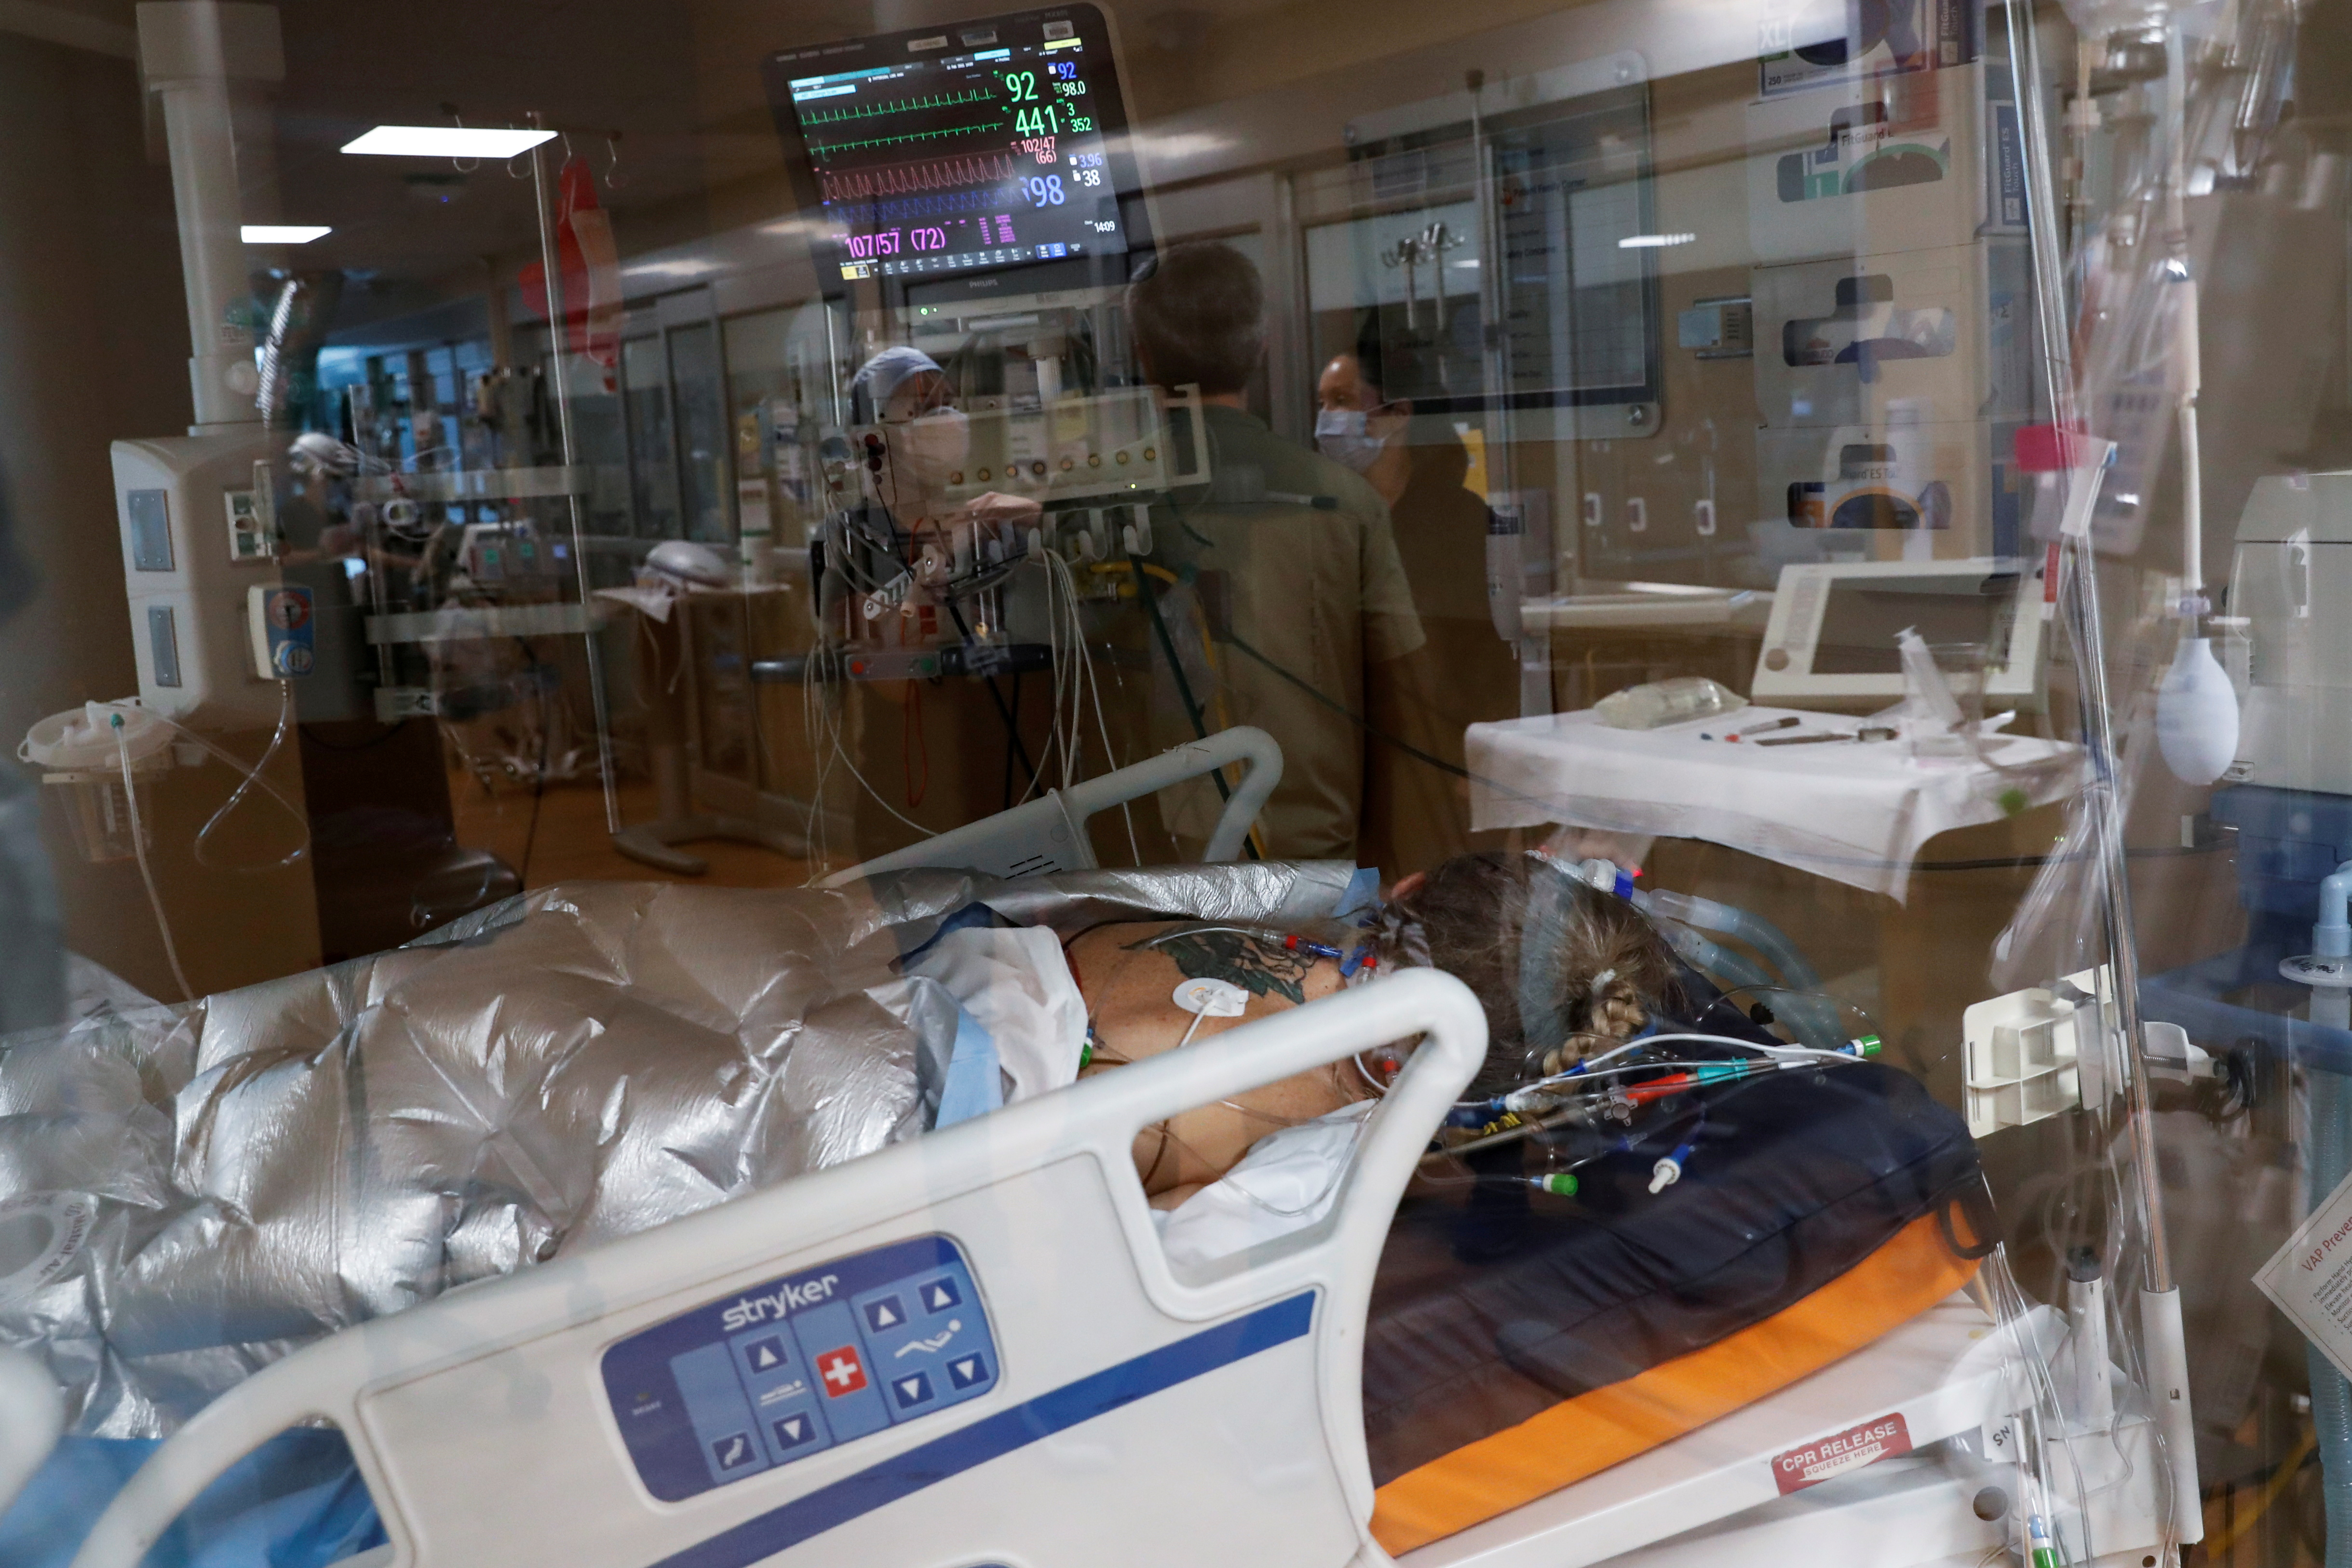 A coronavirus disease (COVID-19) positive patient lies in a bed in the intensive care unit (ICU) at Sarasota Memorial Hospital in Sarasota, Florida, February 11, 2021. REUTERS/Shannon Stapleton/File Photo